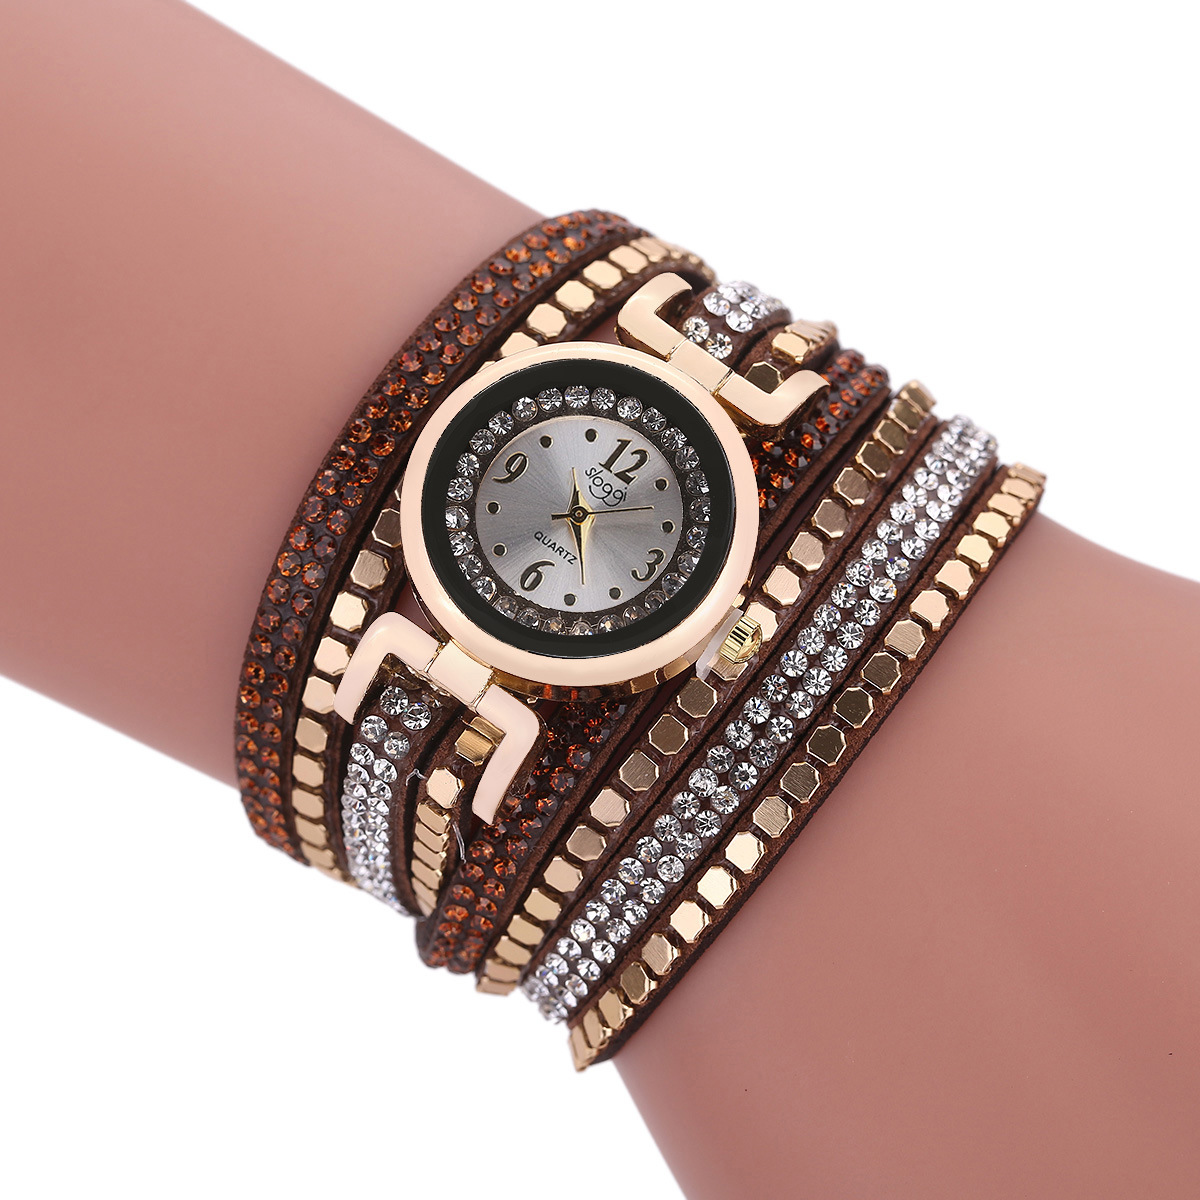 Sloggi Brand Bracelet Dress Watches Women Fashion Fabric Strap Ladies Quartz Wrist Watch Vintage Clock reloj mujer new arrival watch women quartz watch gold clock women leatch watches viuidueture brand fashion ladies dress watches reloj mujer